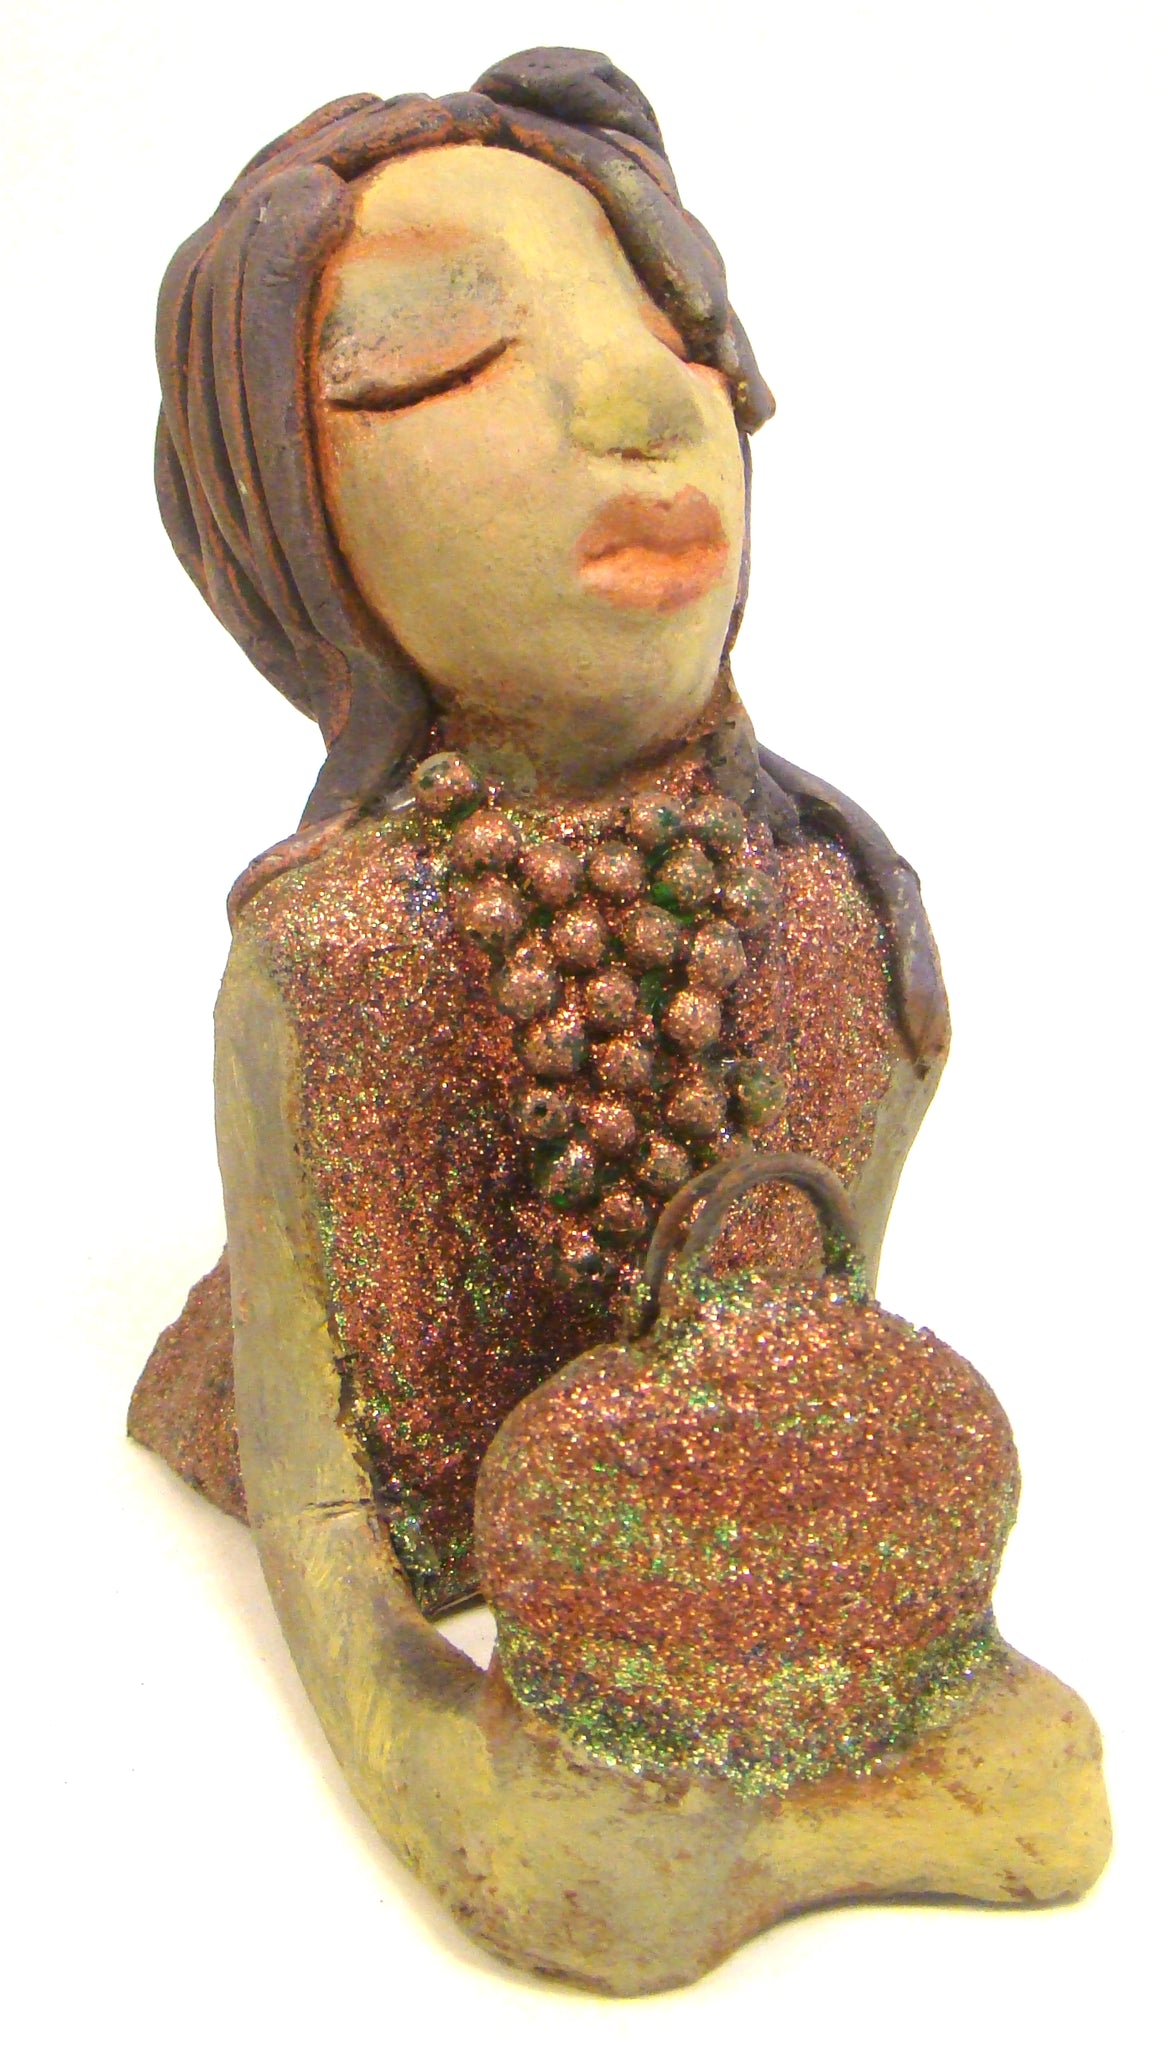 "Lacey stands 6"" x 3"" x 7.5"" and weighs 1.08 lbs. She has a lovely beige olive green complexions with ruby red lips. Her hair is made of coiled clay. Lacey is holding her handbag which matches her copper glittered dress. Give Lacey a special place in your home."